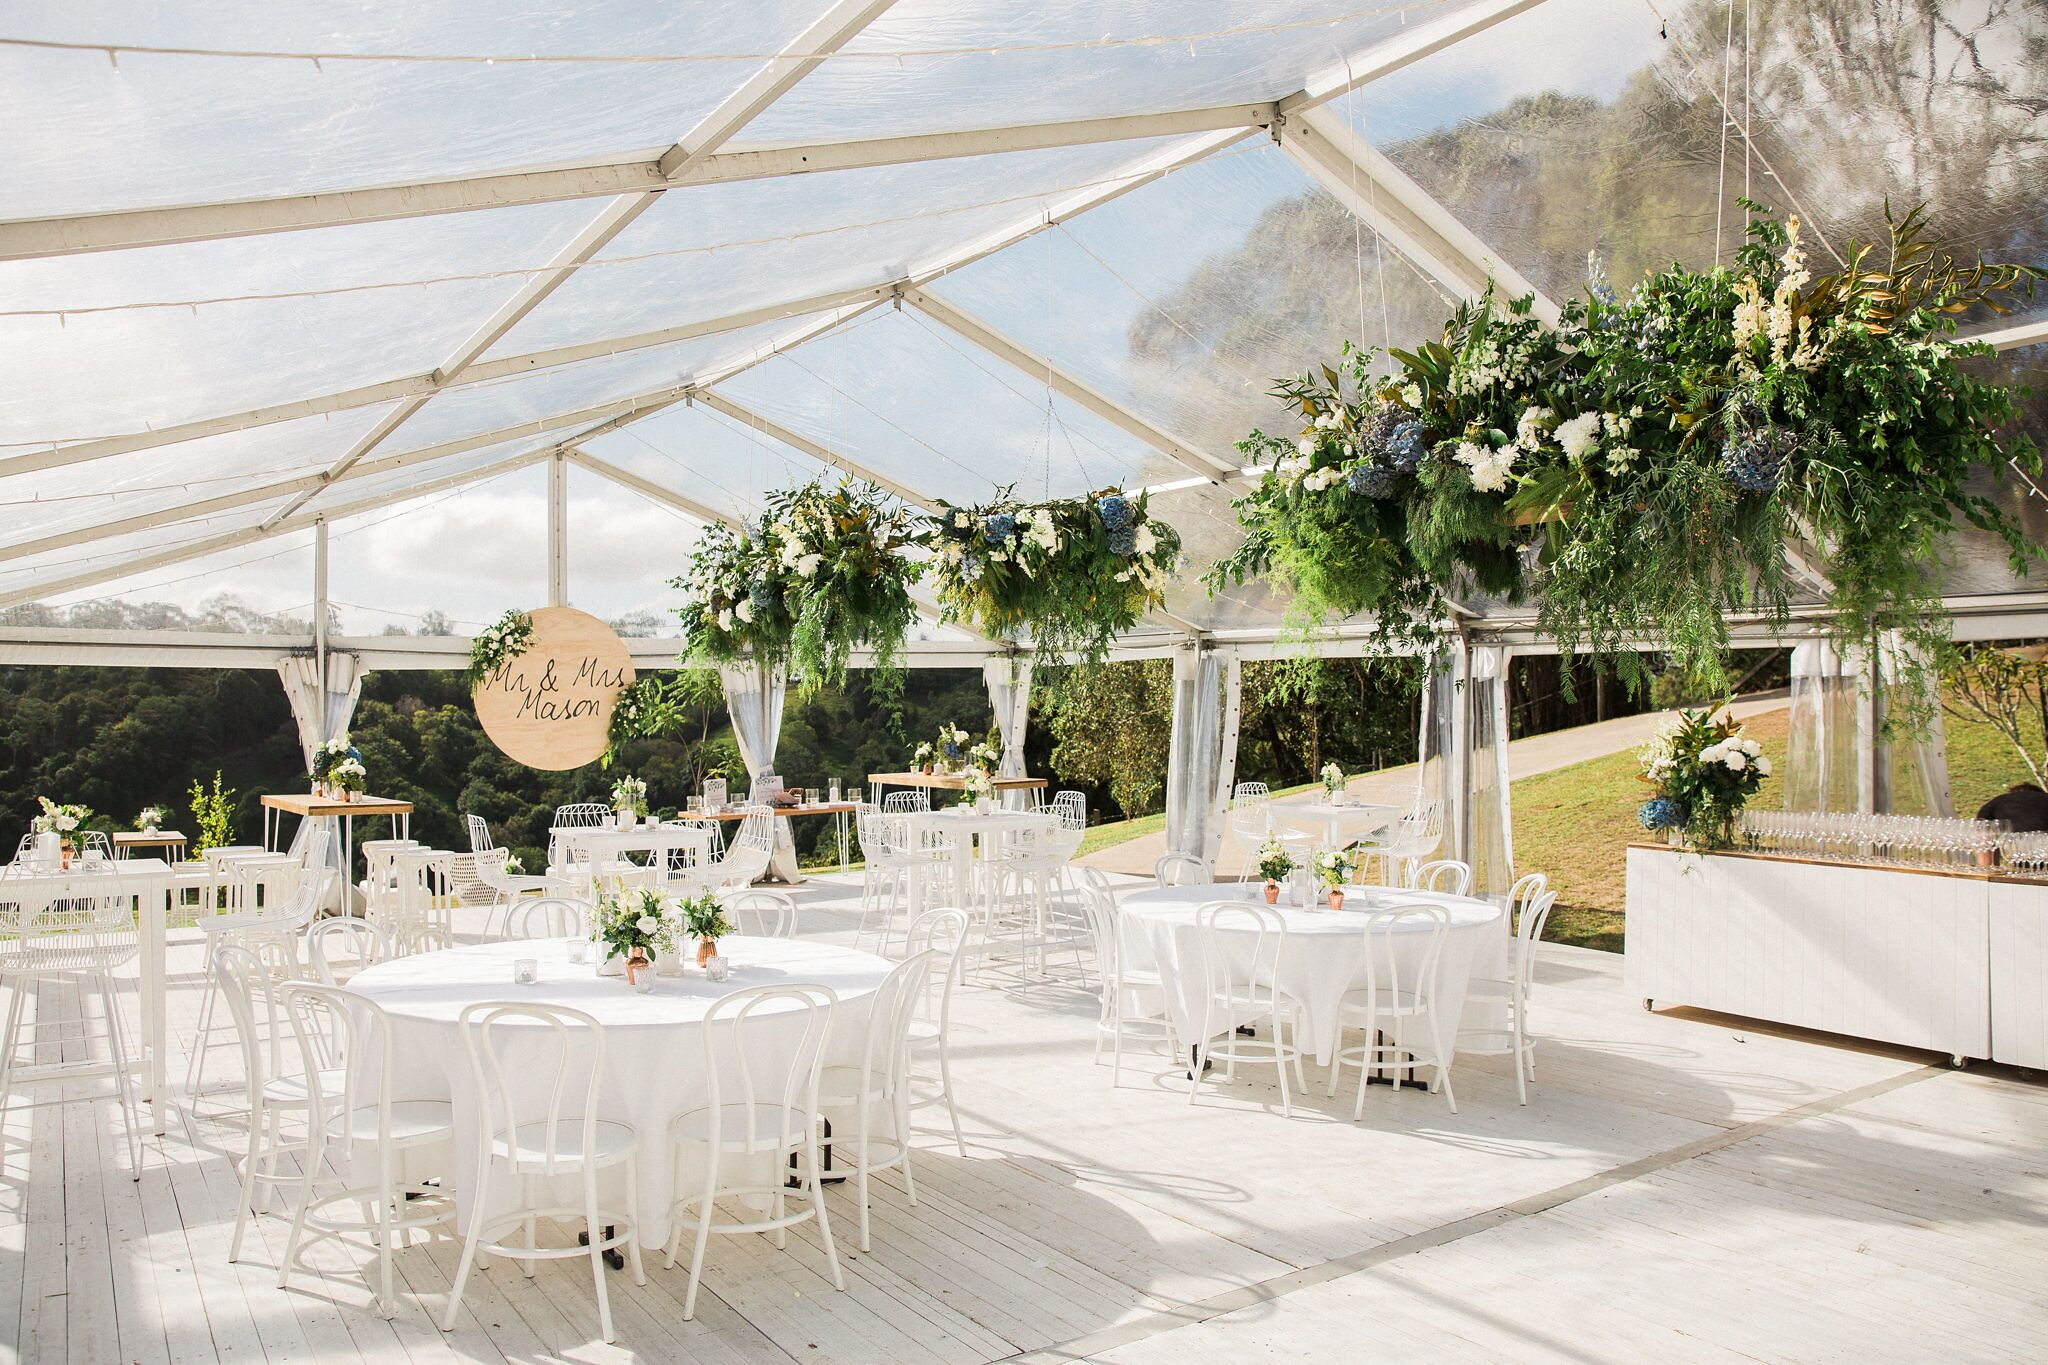 Wedding Reception Hire Checklist Everything You Need to Hire for a